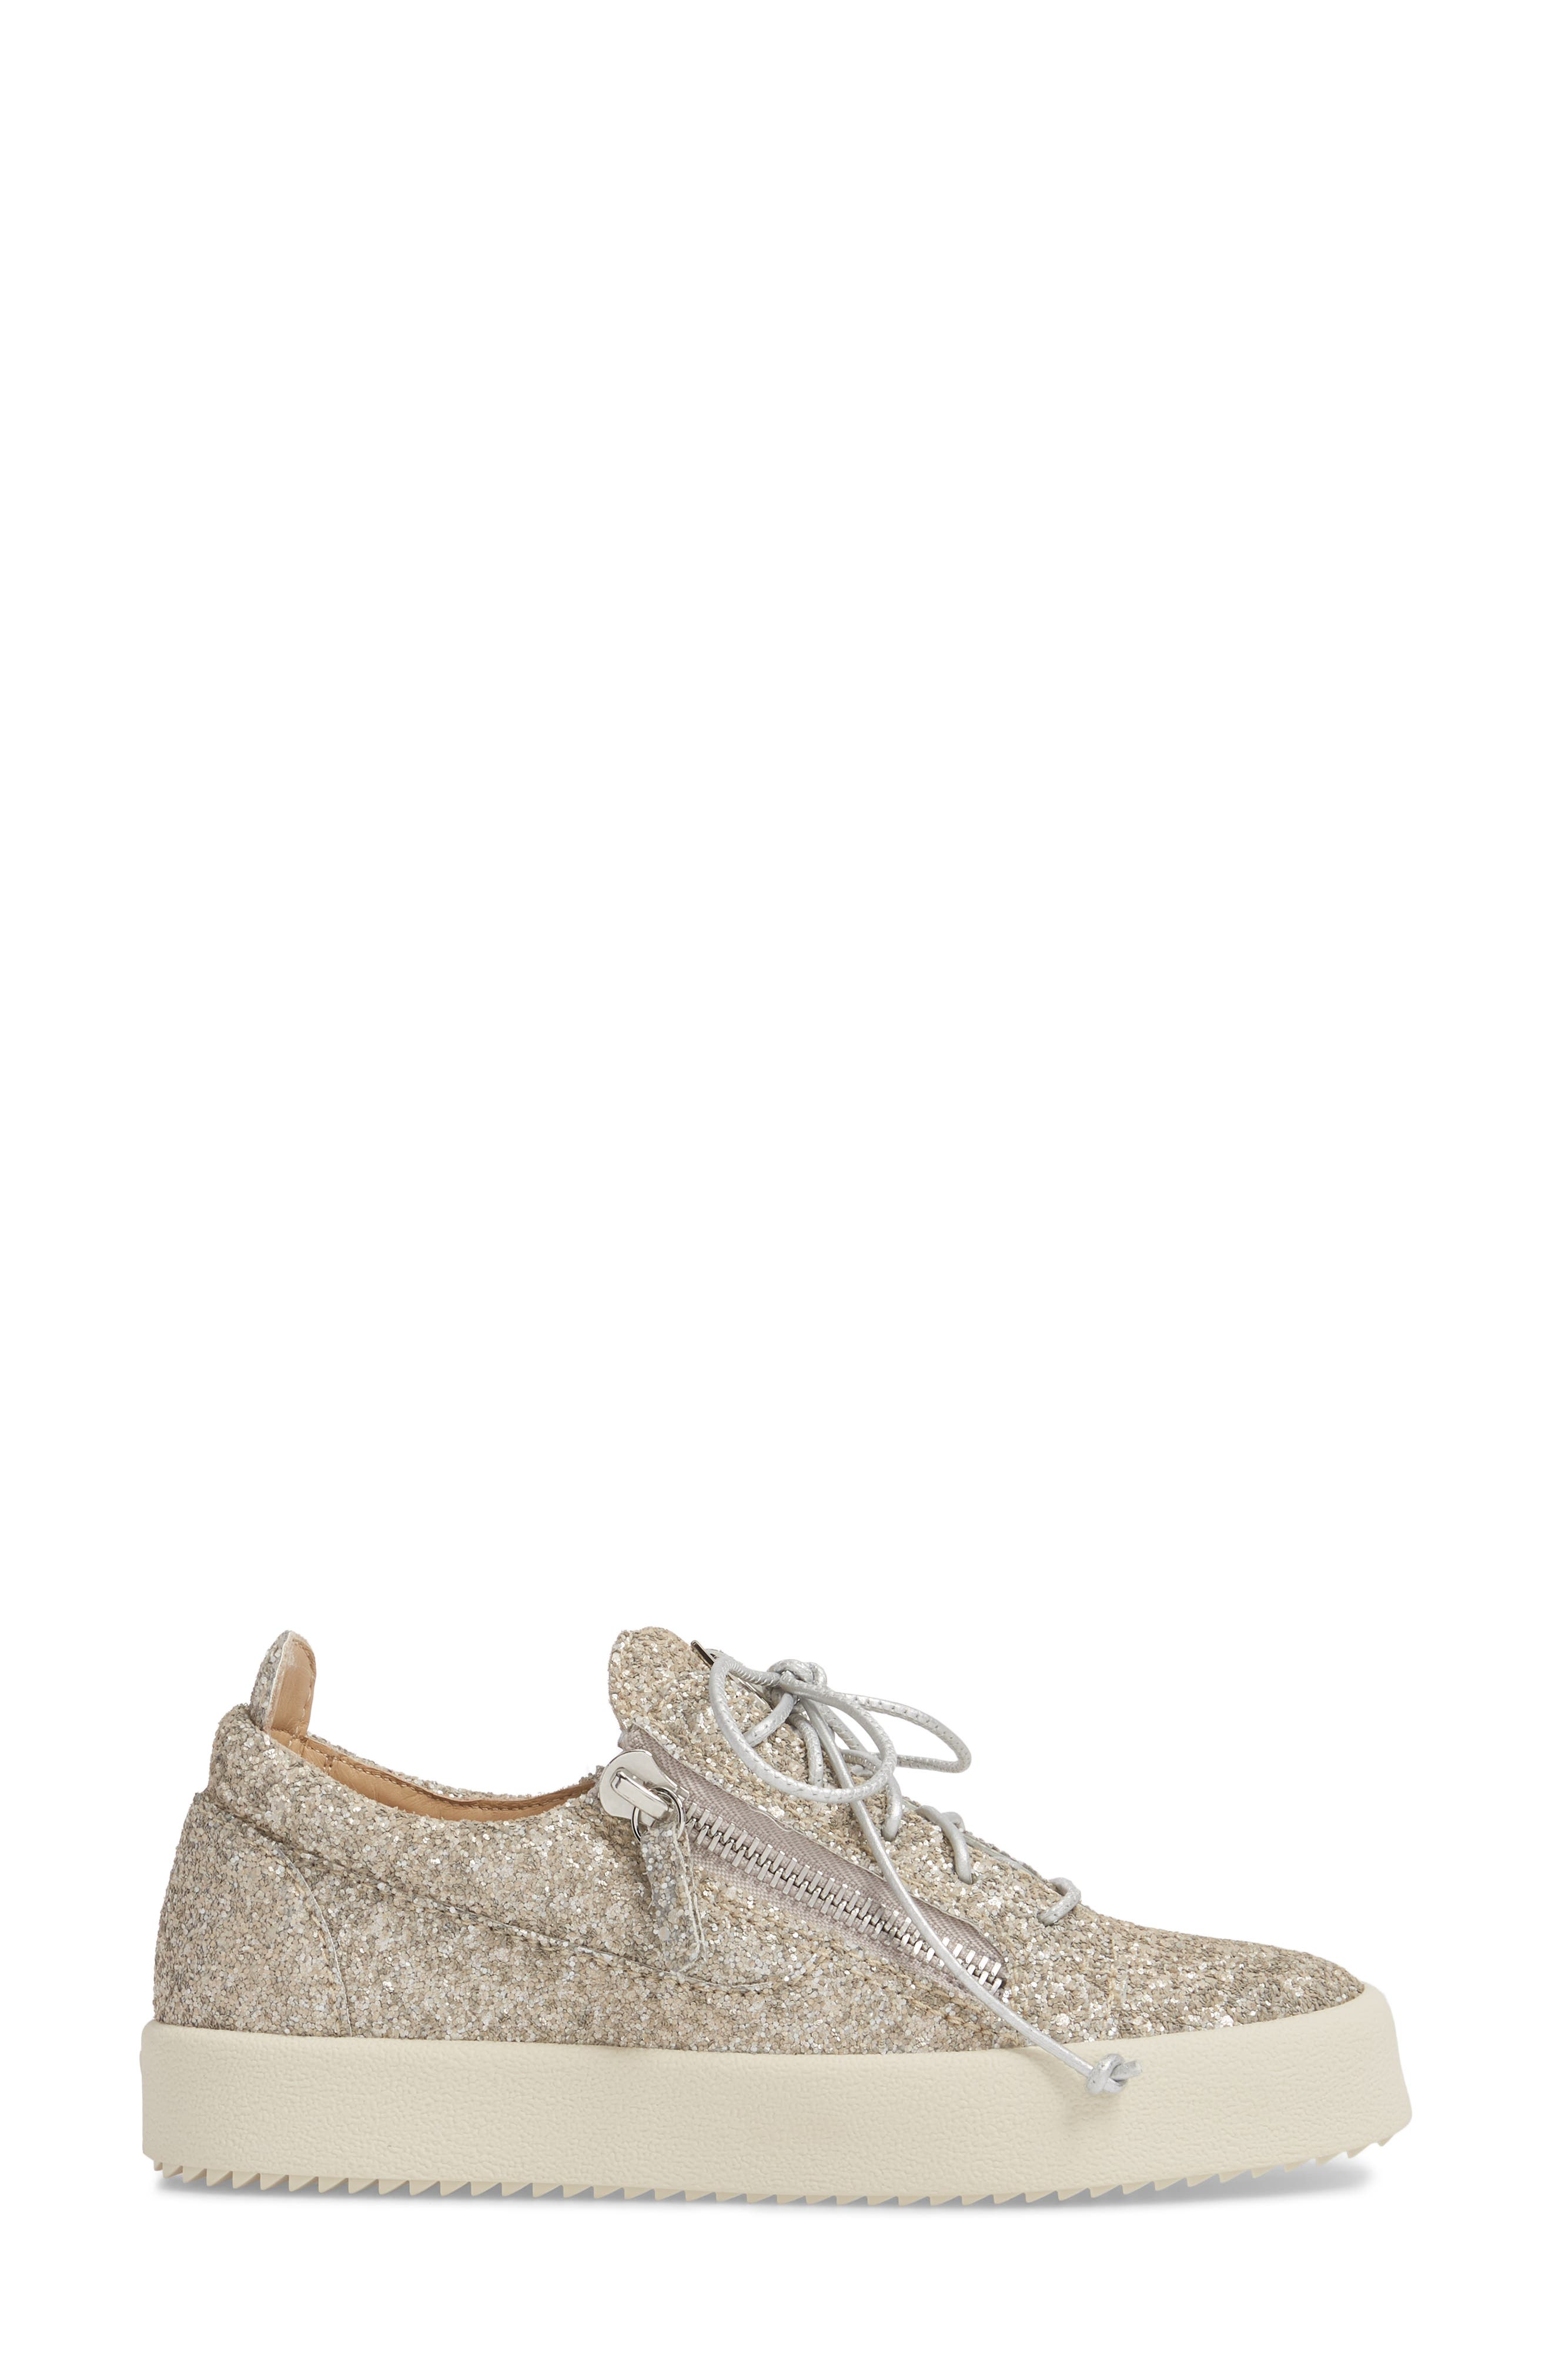 May London Low Top Sneaker,                             Alternate thumbnail 3, color,                             Champagne